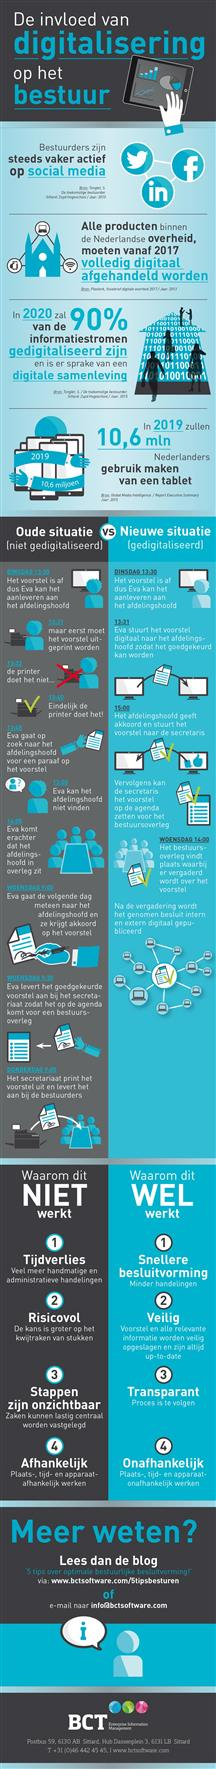 infographic-digitalisering